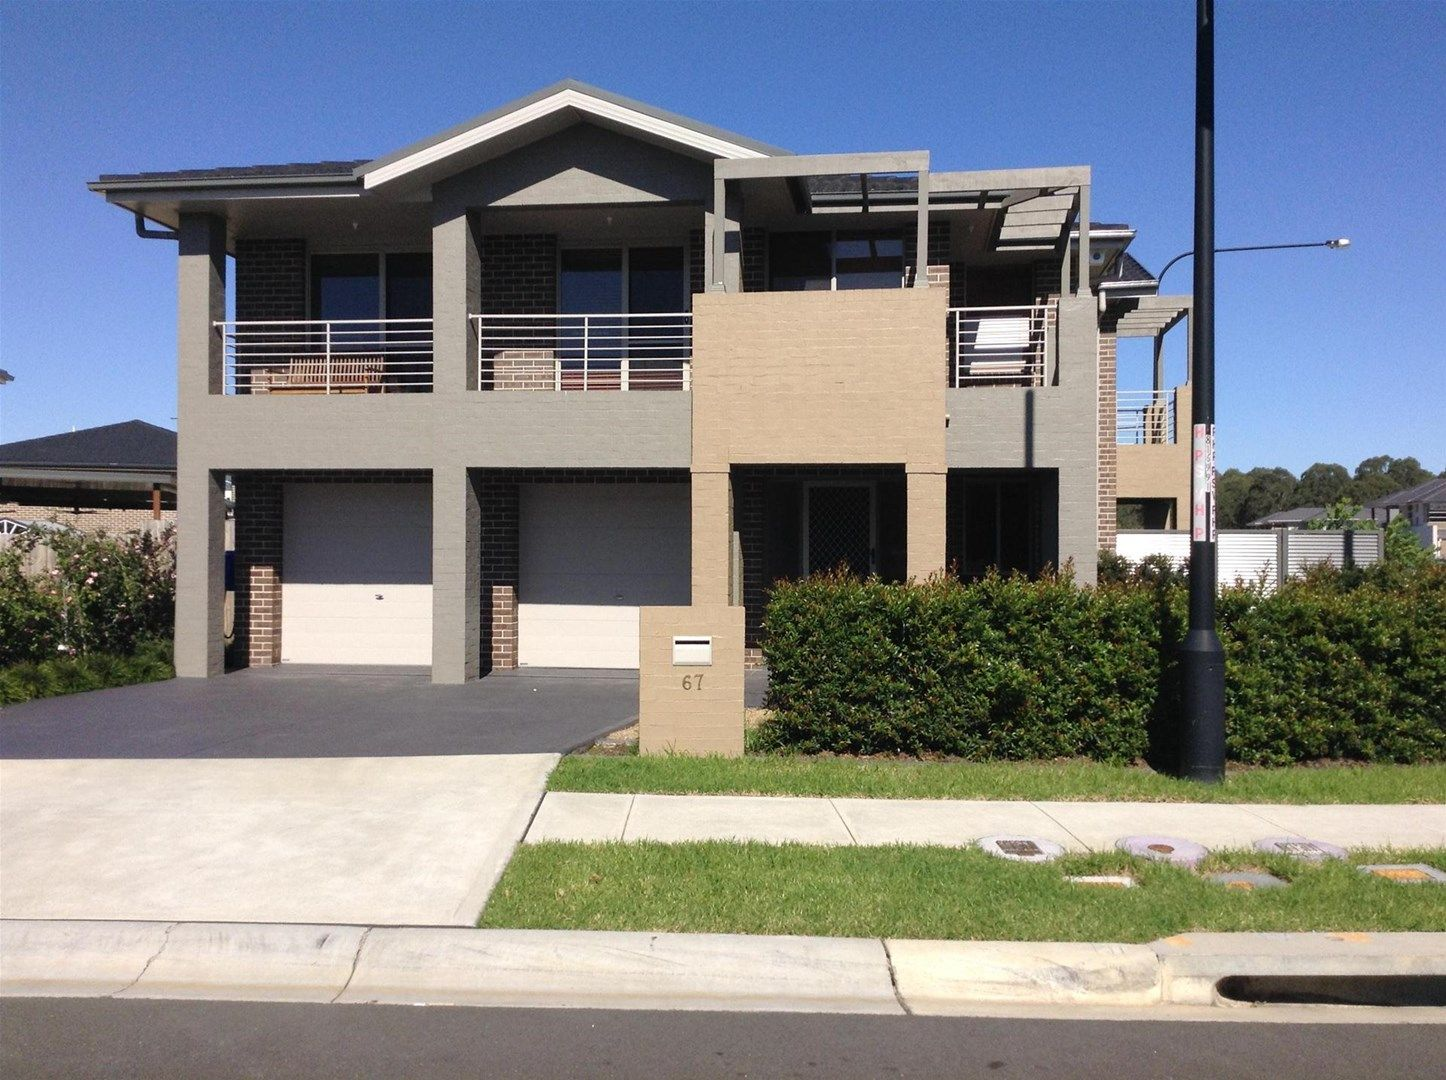 67 Adelong Parade, The Ponds NSW 2769, Image 0